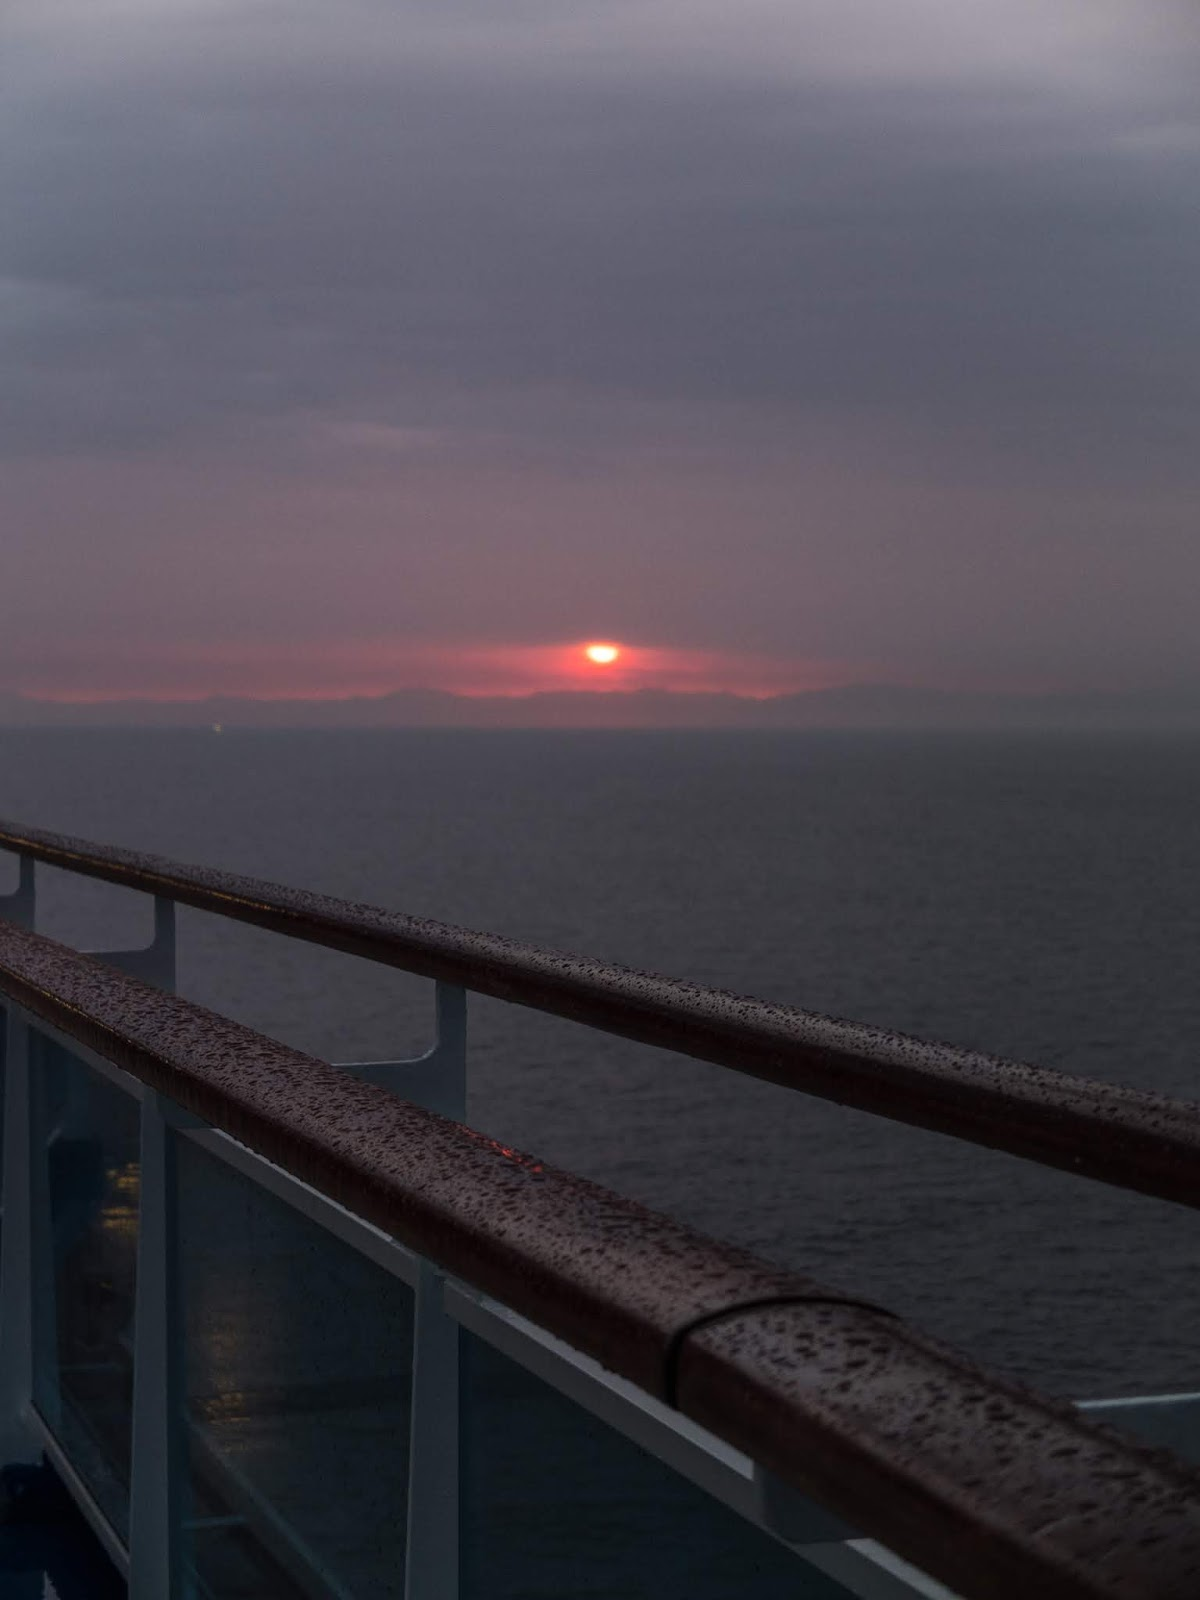 Sun rising over the mountains in the horizon with rain drops on a railing in the foreground.